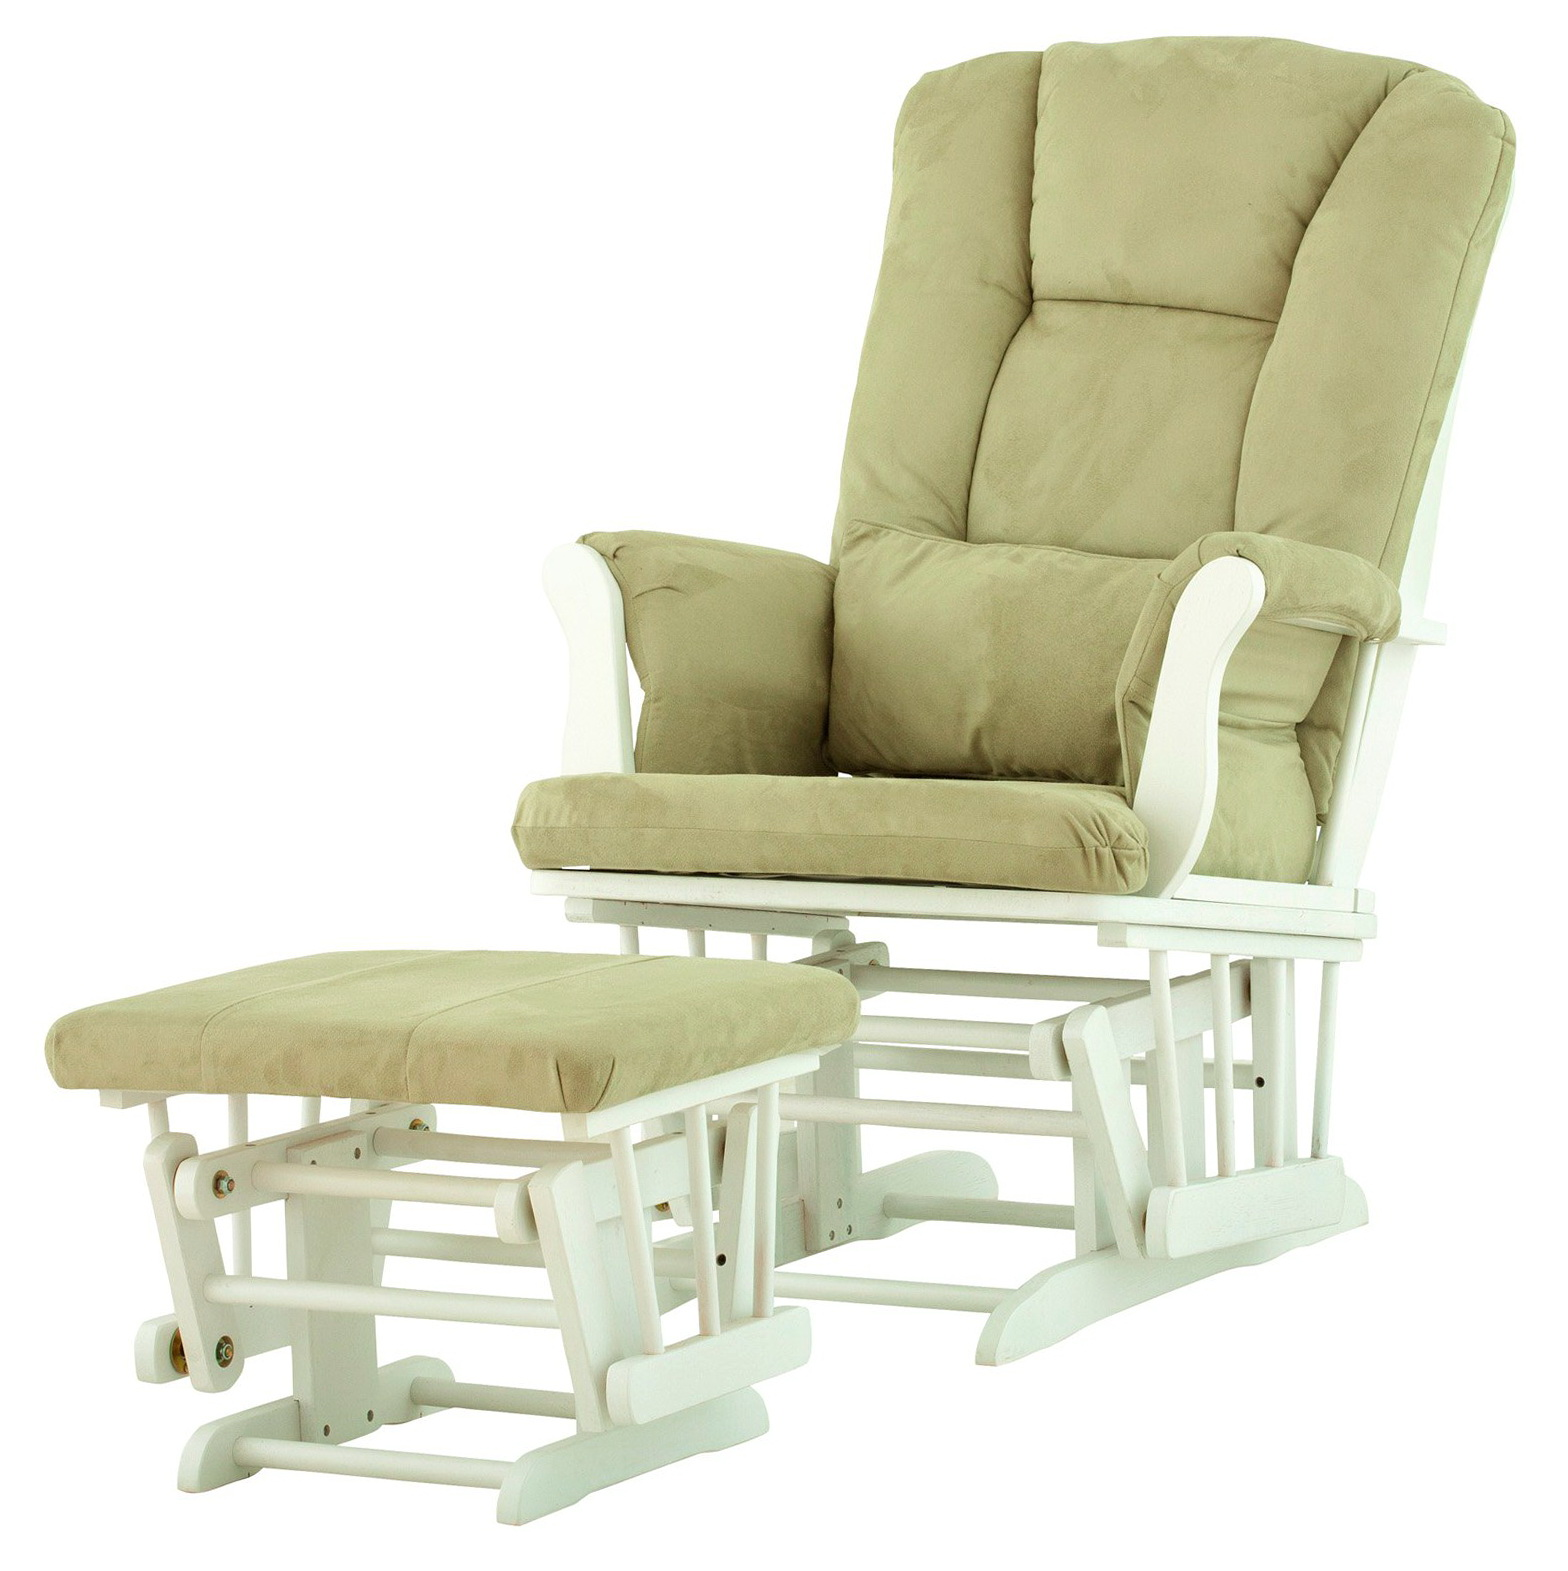 Replacement Cushions For Glider Rocker And Ottoman